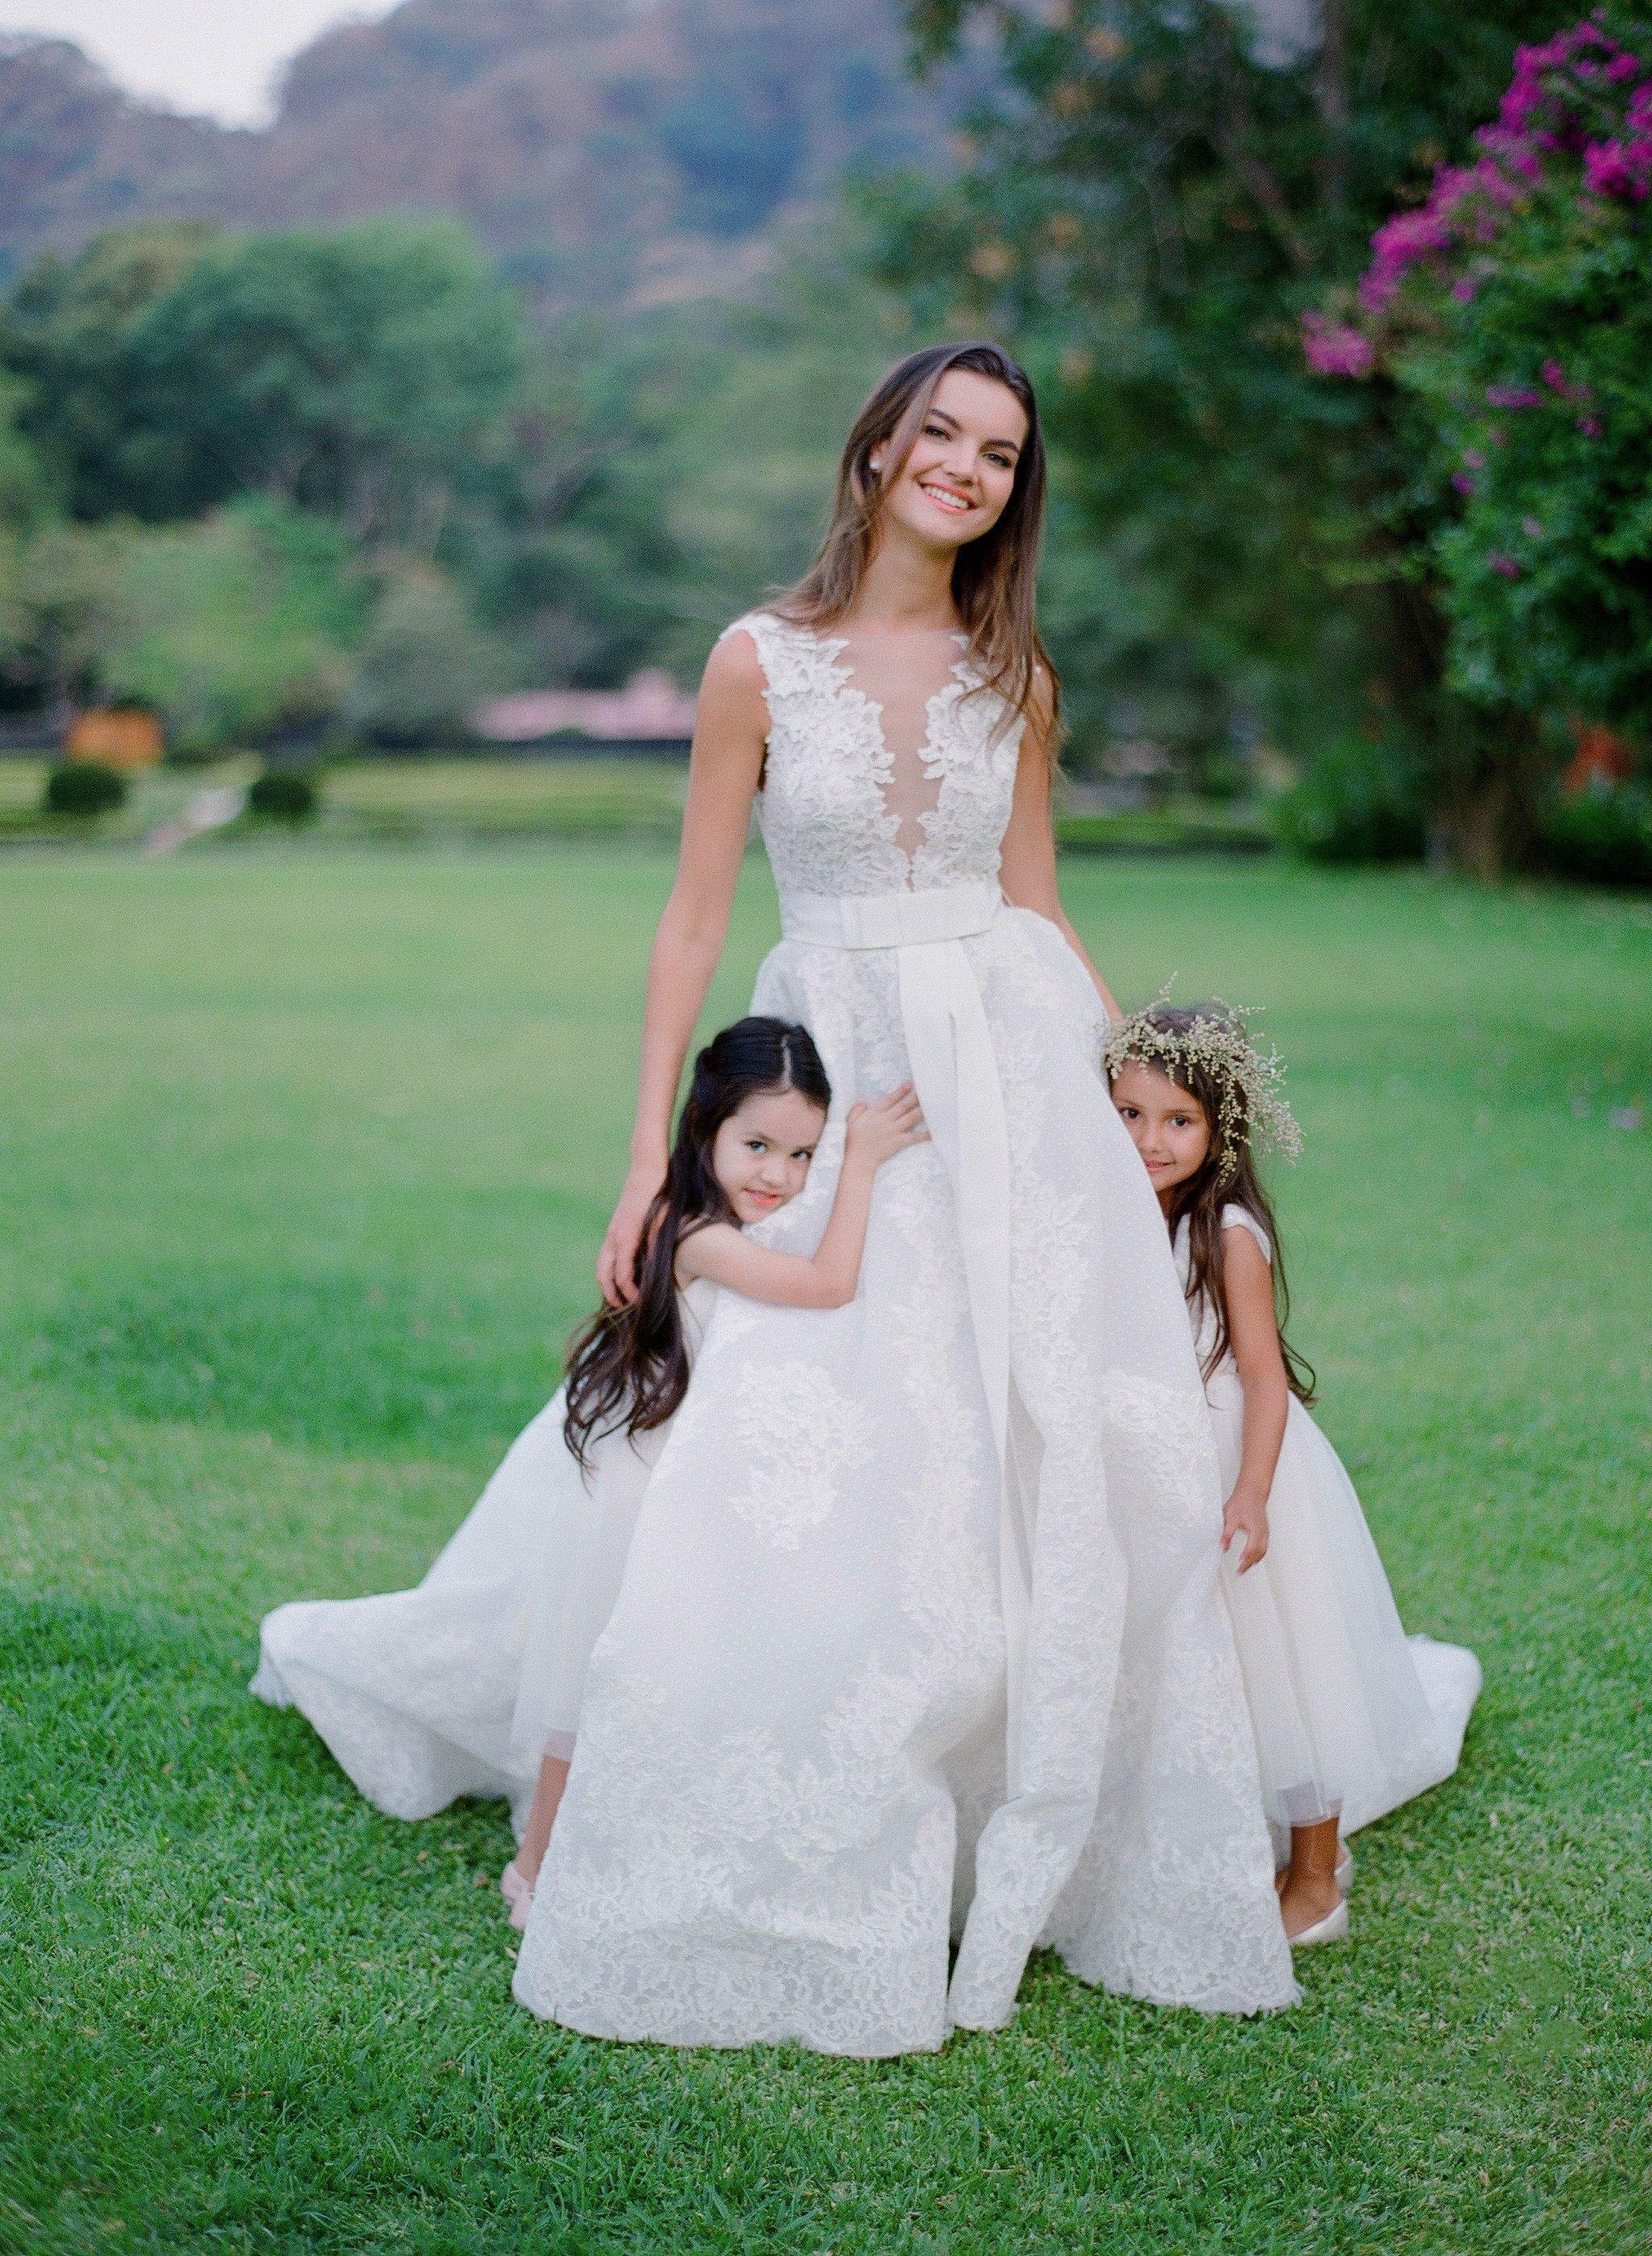 #KleinfeldEditorial We took our newest wedding dresses, bridesmaids dresses and flower girl dresses from Kleinfeld Bridal and Kleinfeld Bridal Party down to the Hacienda San Antonio in Colima Mexico for a stunning editorial photoshoot—here is all the adorable flower girl inspiration you need to get the perfect photos from your photographer!